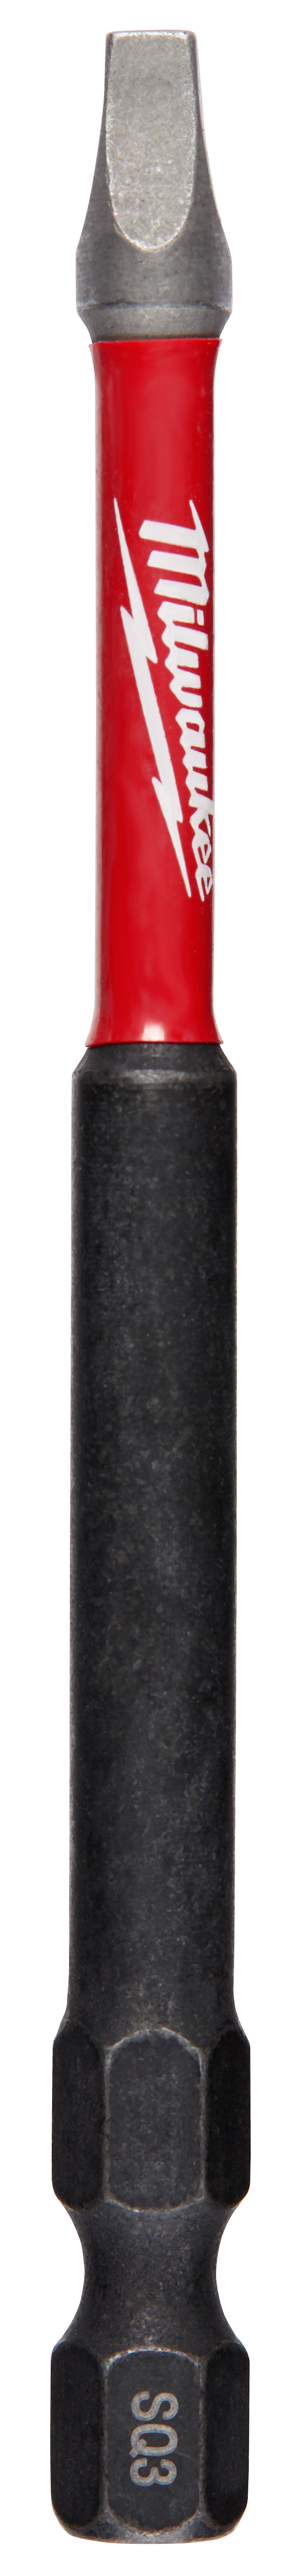 Milwaukee® SHOCKWAVE™ 48-32-4796 Impact Power Bit, #3 Square Recessed Point, 3-1/2 in OAL, 1/4 in, Steel